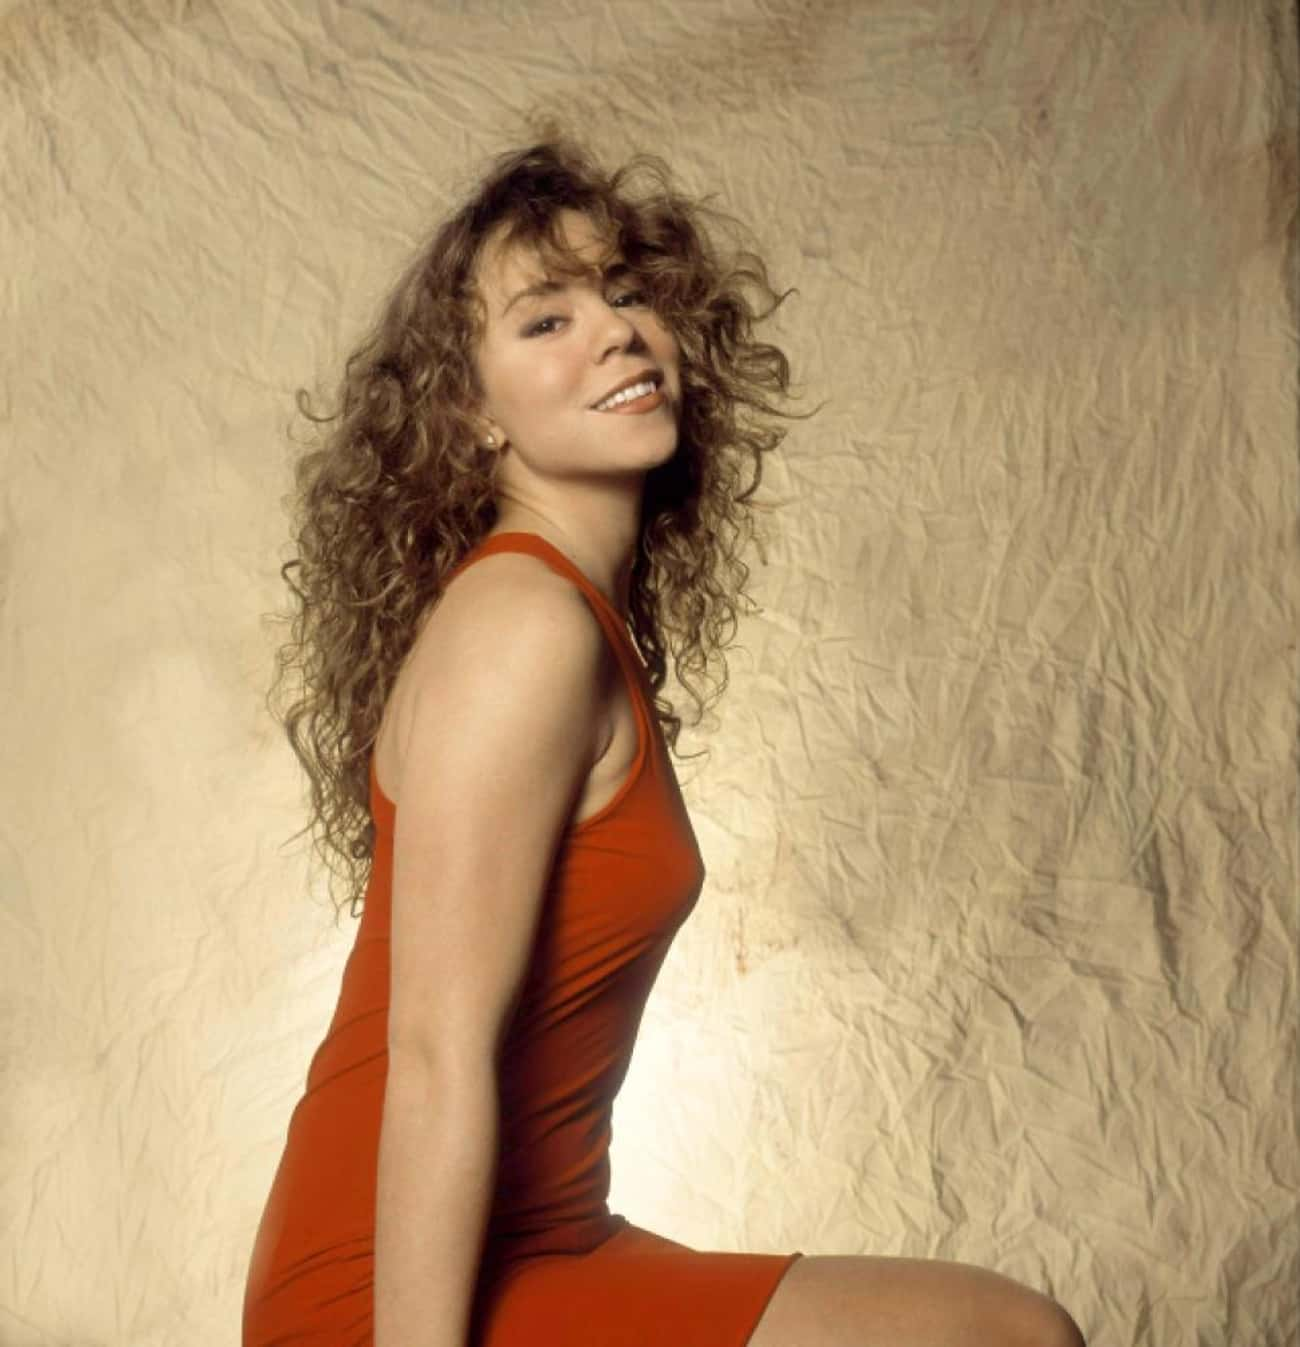 Young Mariah Carey in Orange D is listed (or ranked) 4 on the list 19 Pictures of Young Mariah Carey